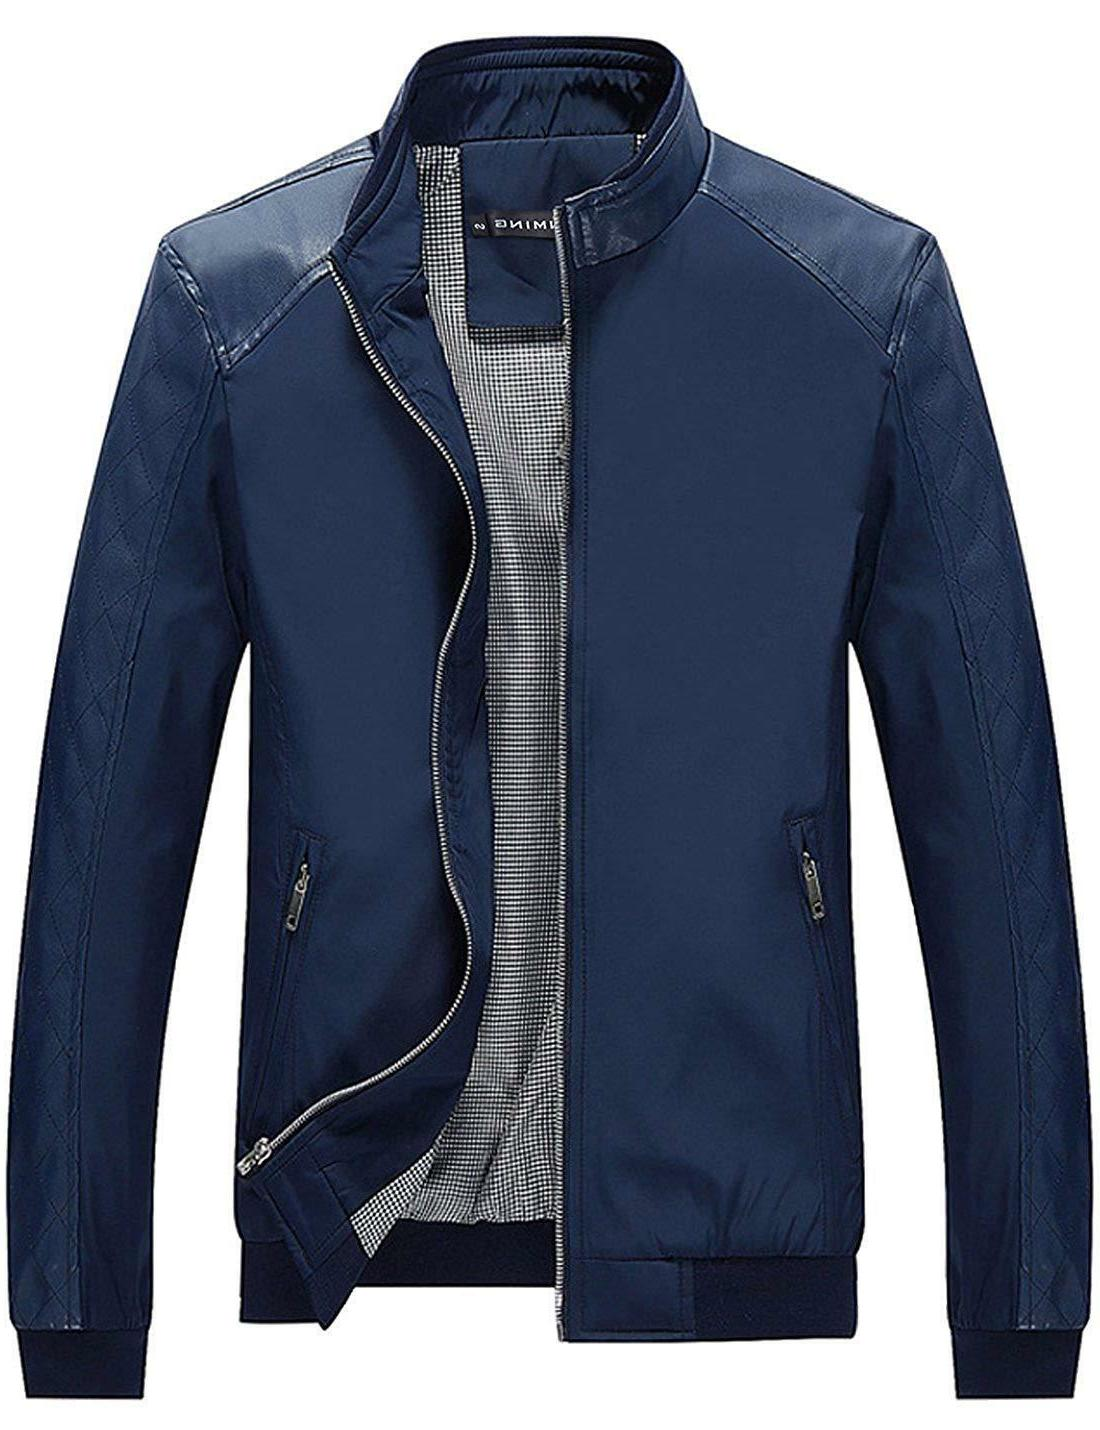 Tanming Slim Jacket